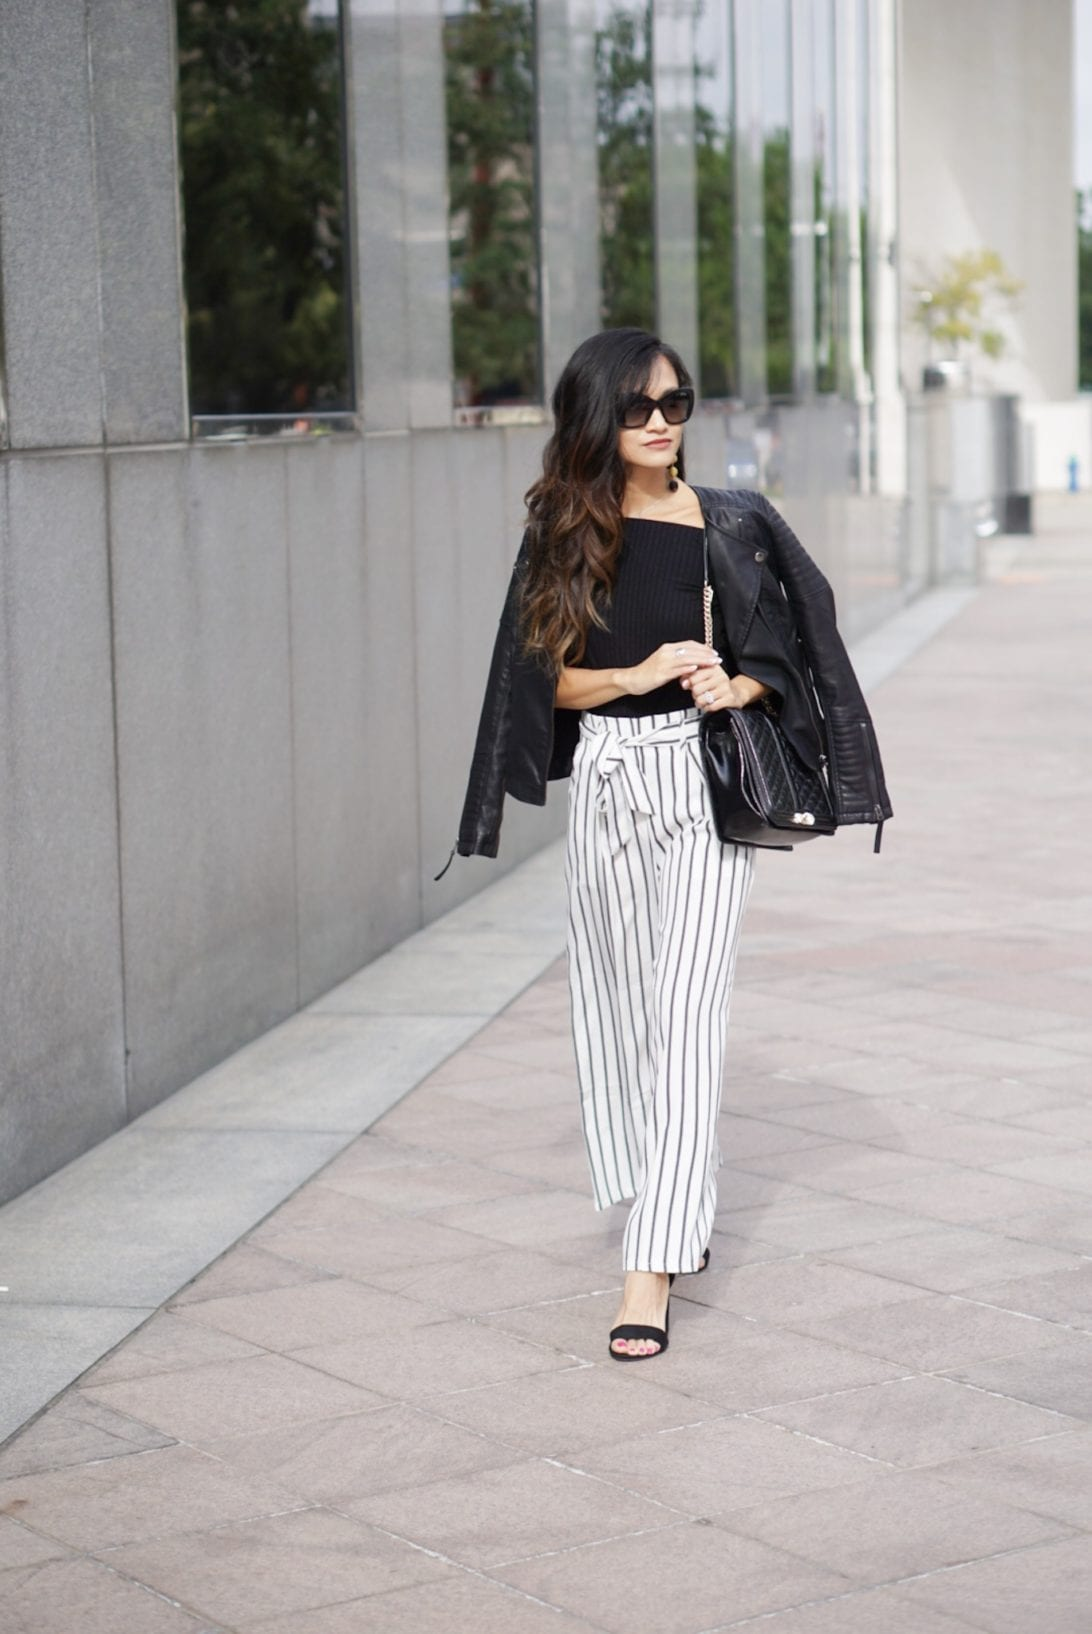 work wear outfit, business causal outfit, striped pants, culottes, wide leg pants, striped wide leg pants, Versace sunglasses, leather Moto jacket, love crossbody bag, Rebecca minkoff, black block heels, how to wear wide leg pants, outfit idea, outfit inspiration